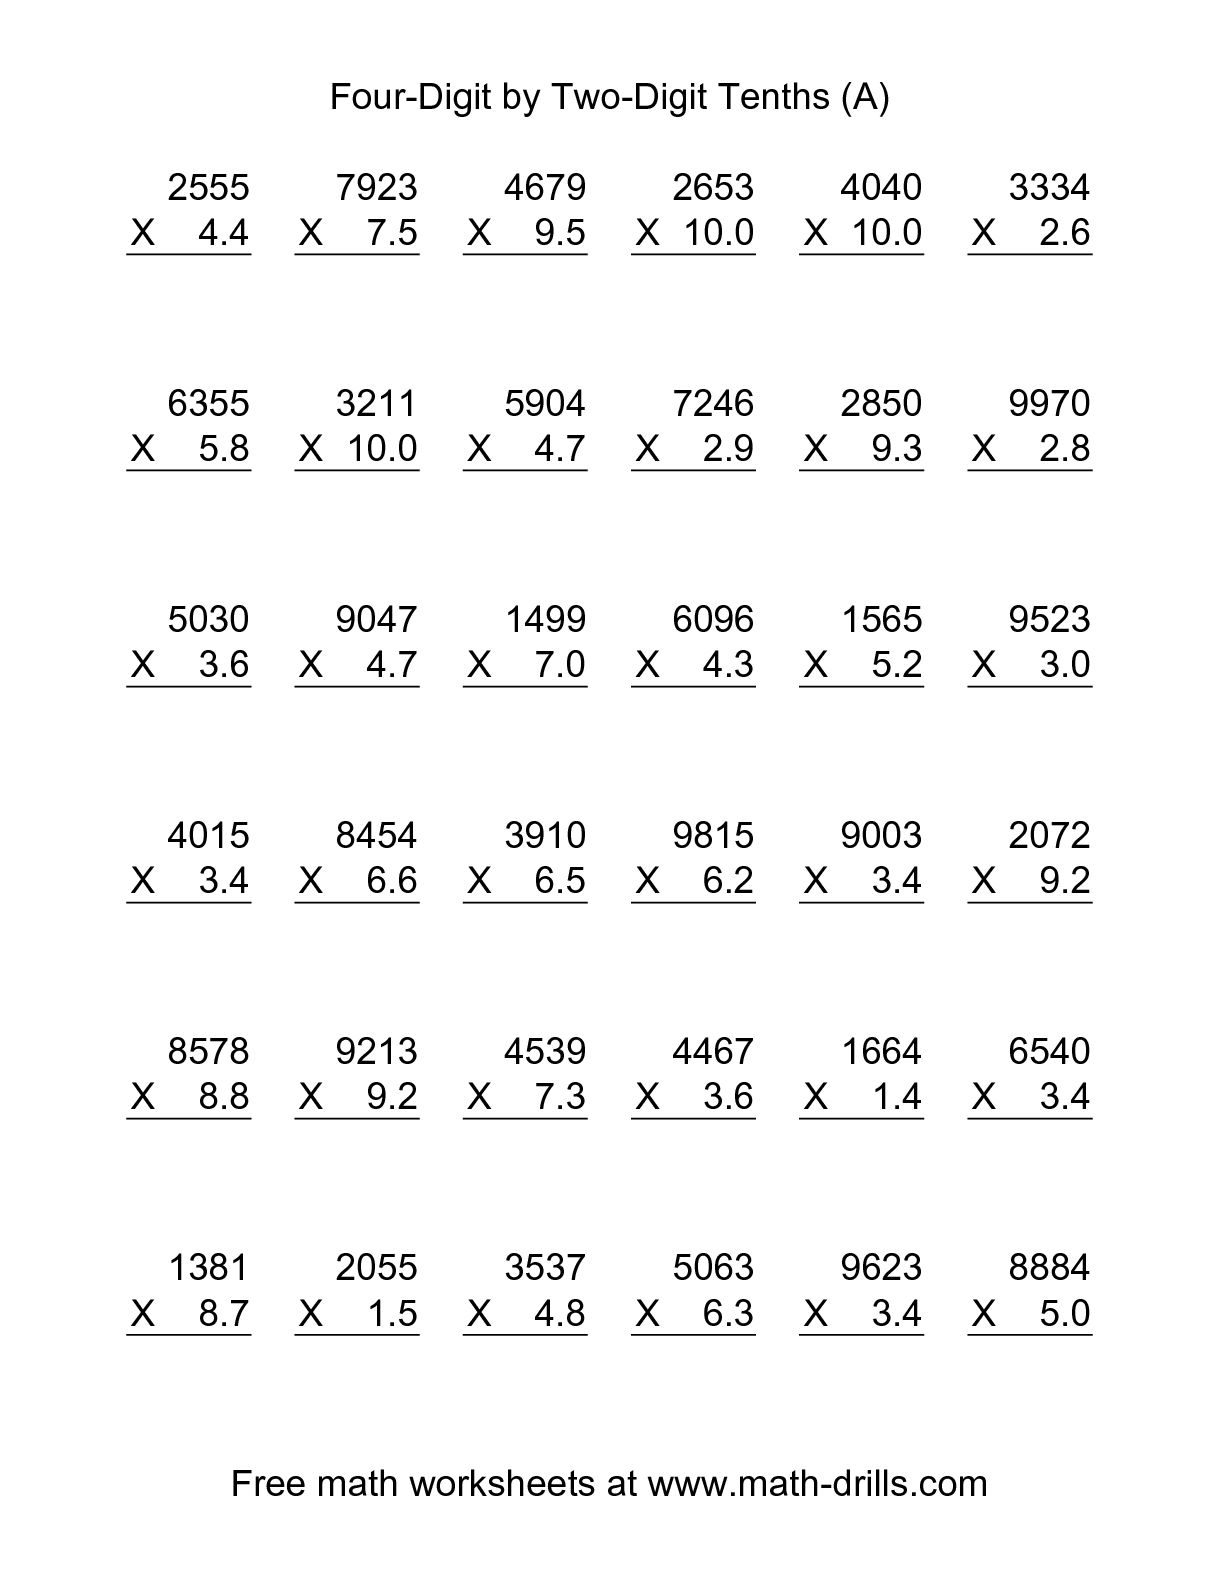 Decimal Multiplication And Division Worksheets Free Printables With - Multiplying Decimals Free Printable Worksheets